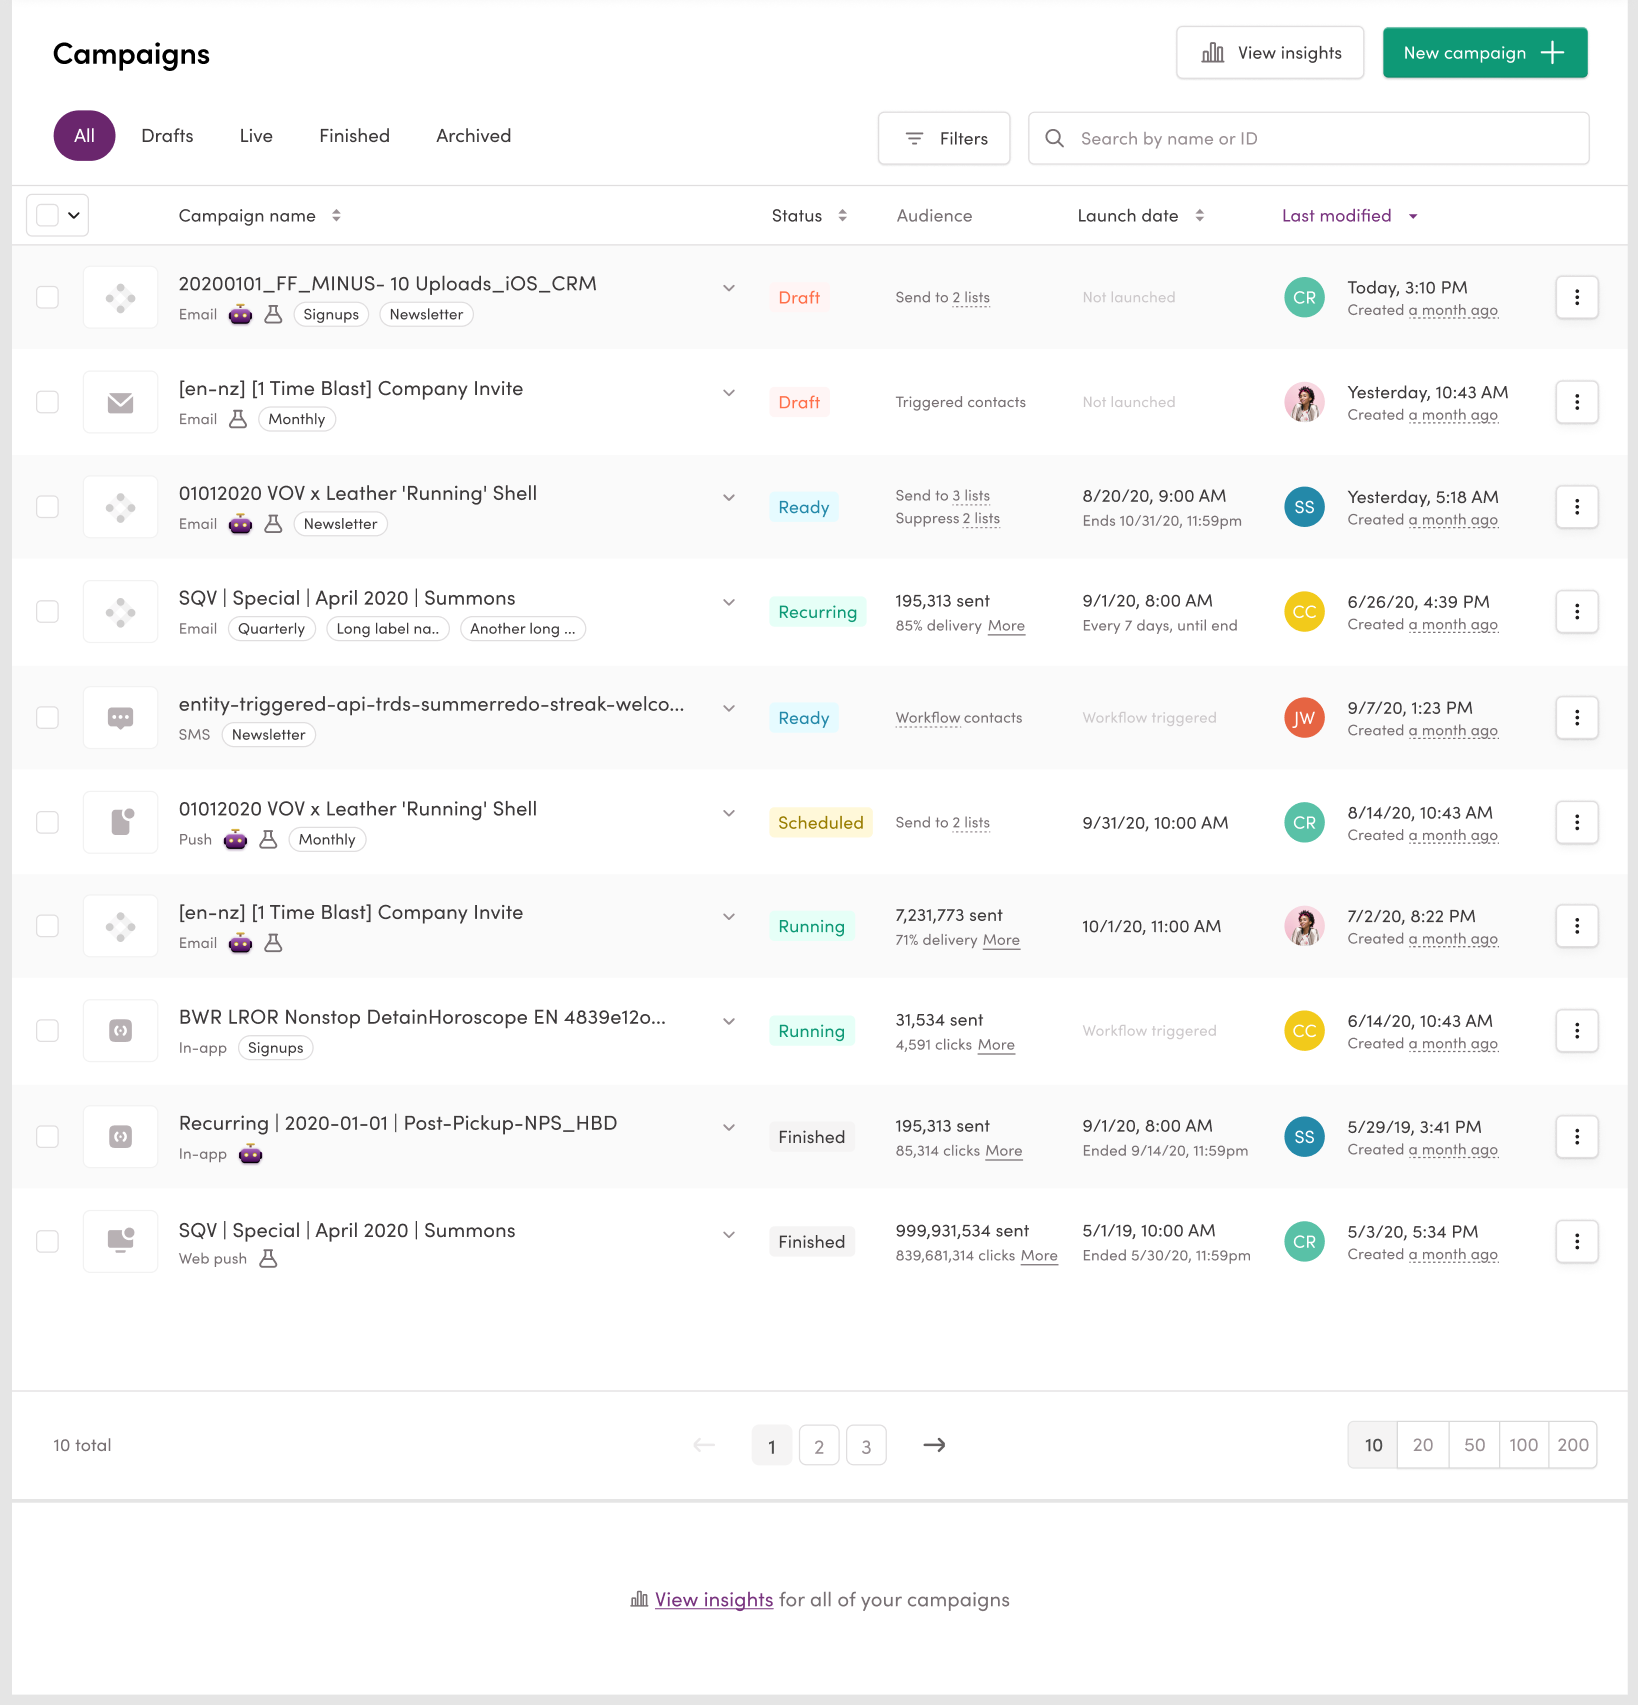 Campaigns Page